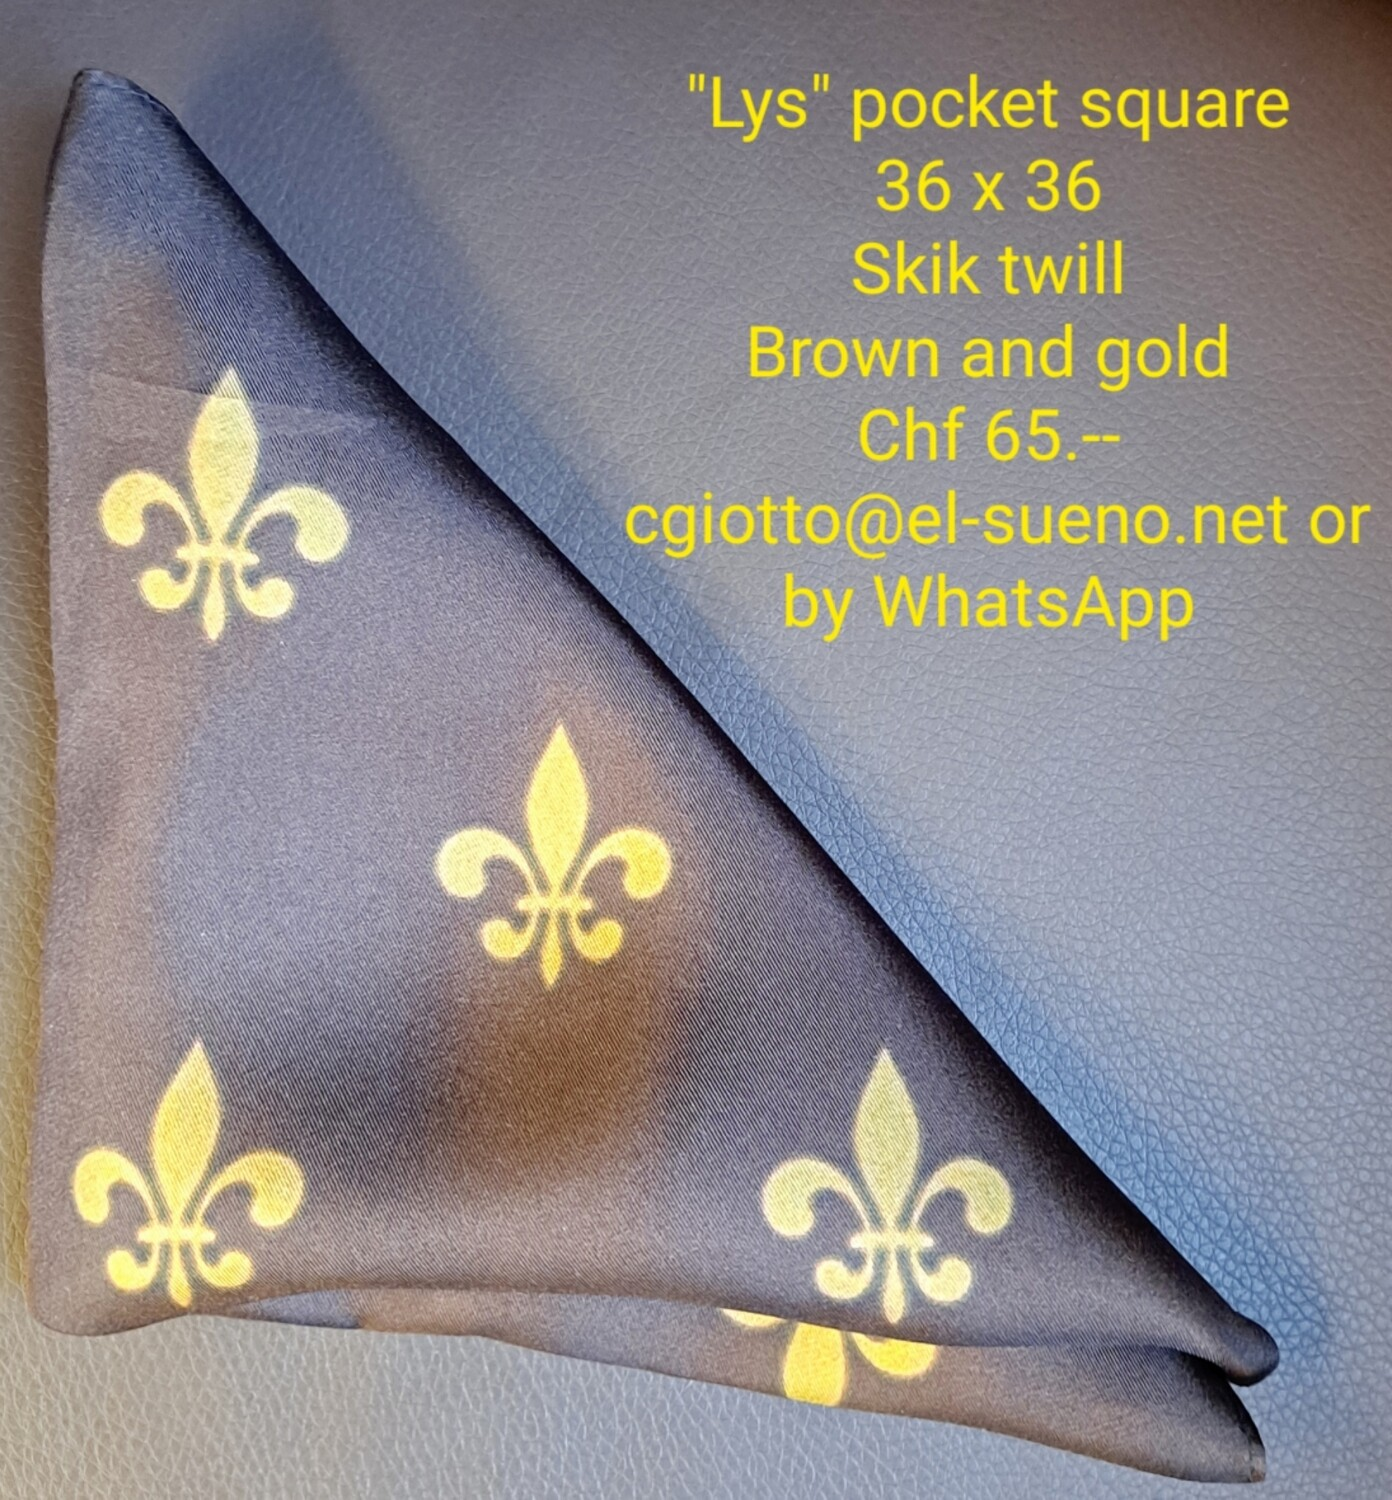 NEW ! LYS Gold and brown Pocket square